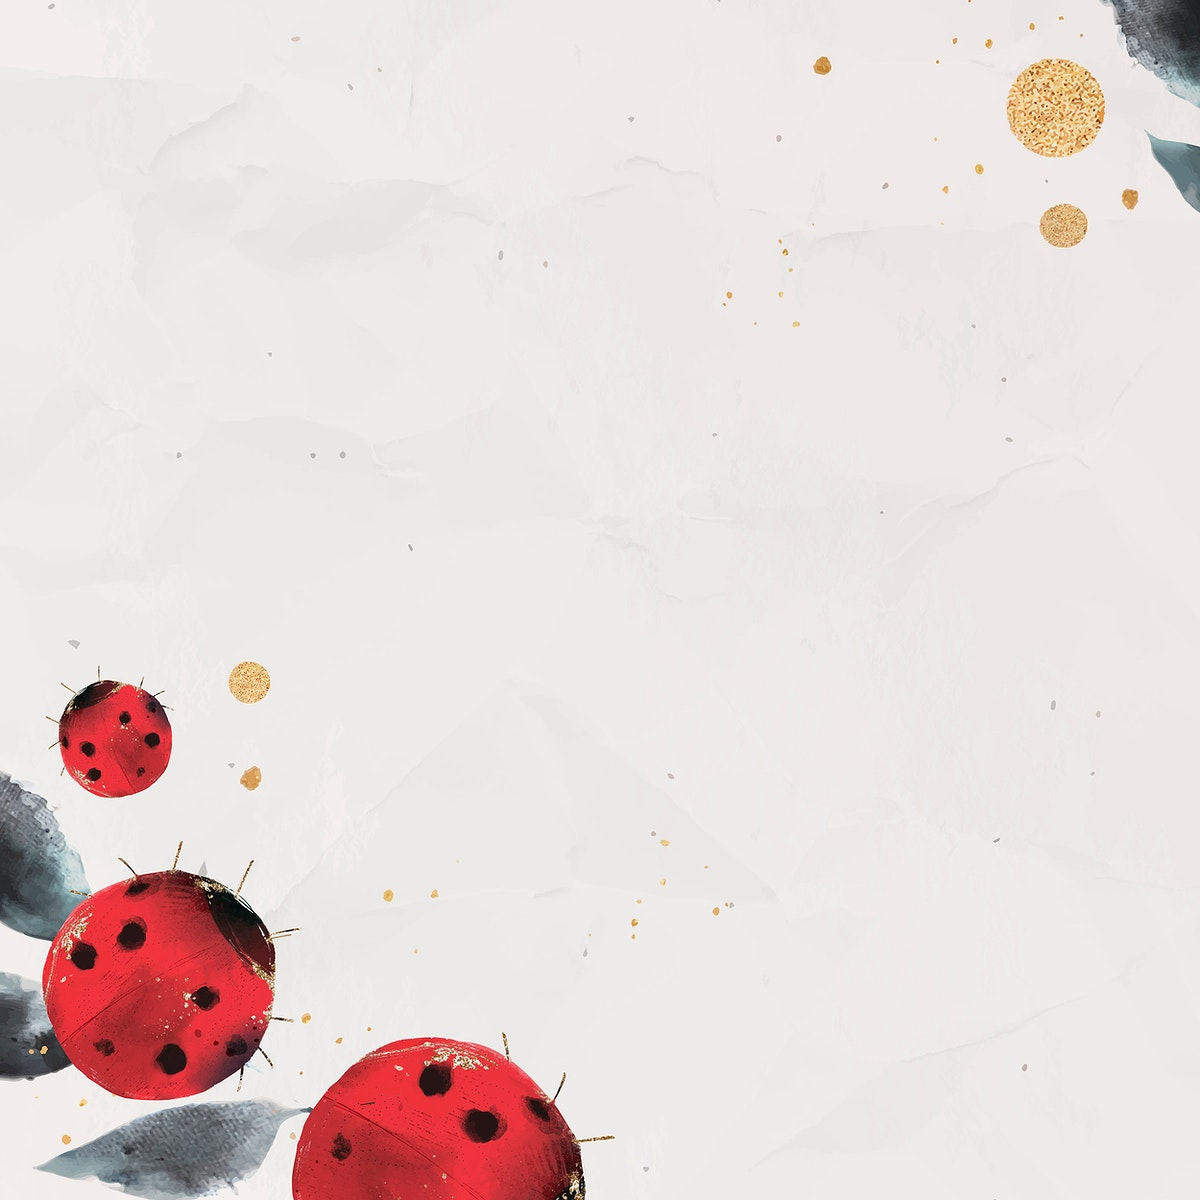 Ladybug and leaves watercolor background vector